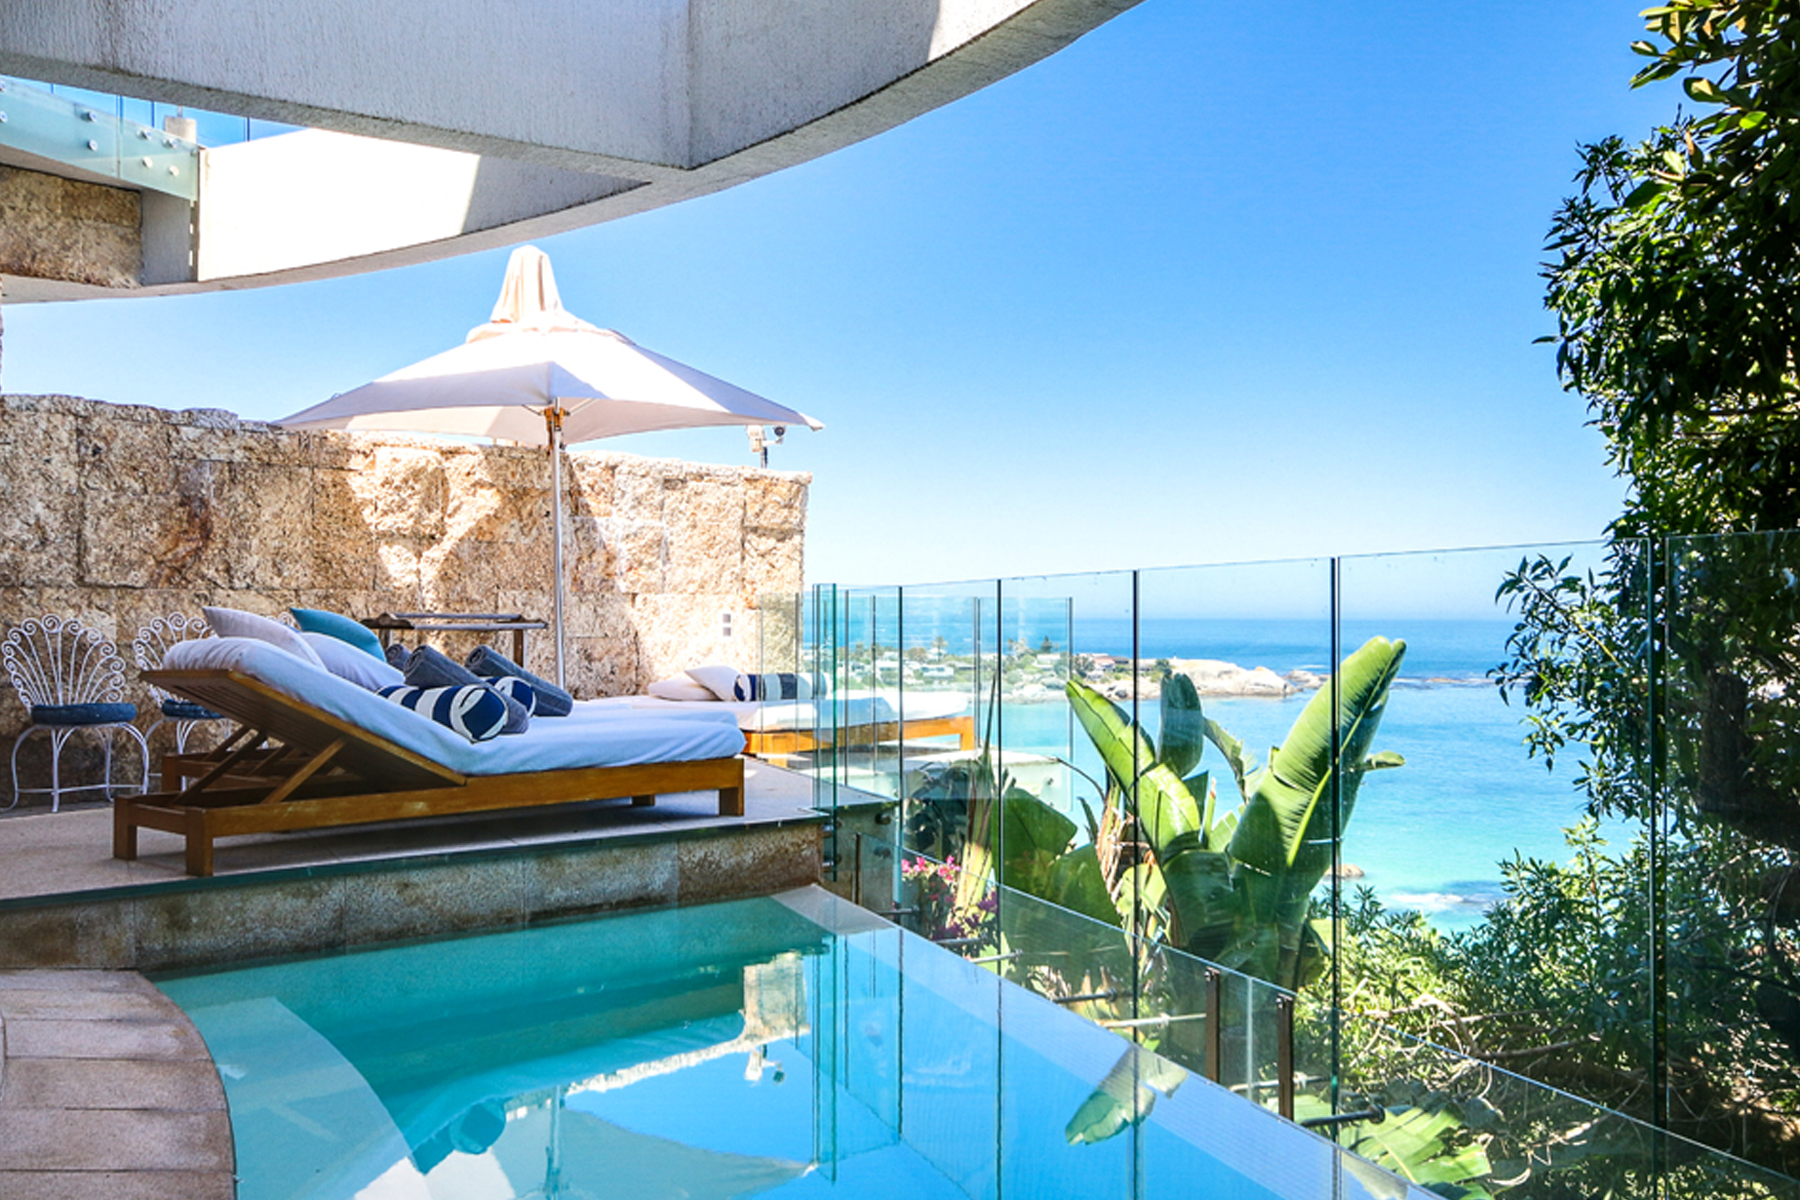 Casa Unifamiliar por un Venta en A Tranquil retreat right on the beach Cape Town, Provincia Occidental Del Cabo, 8005 Sudáfrica